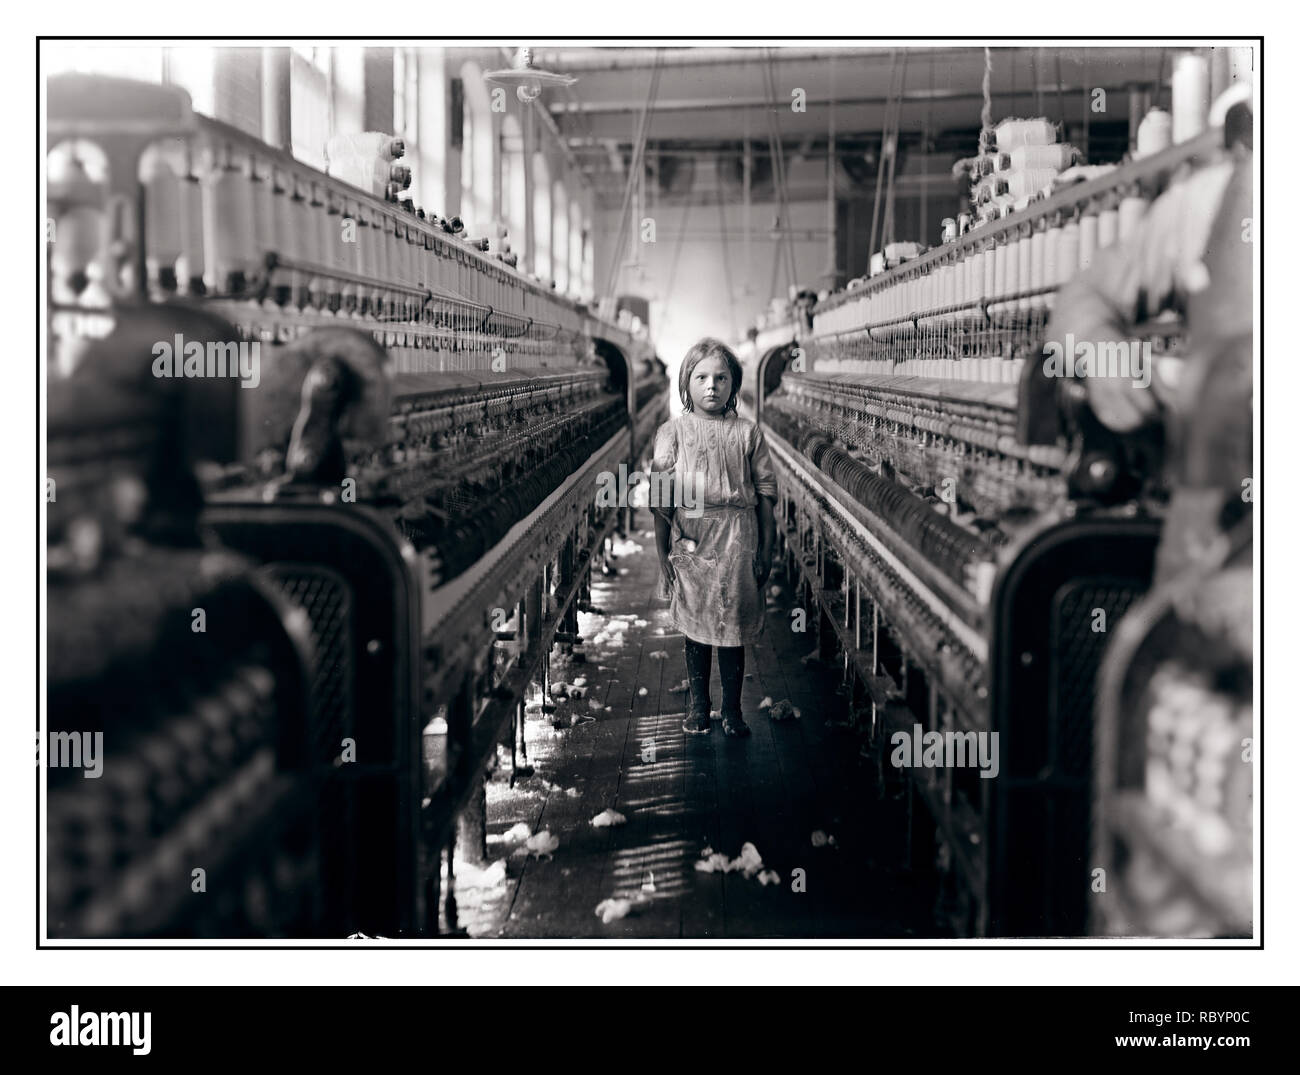 CHILD LABOUR UNDERAGE WORKERS RIGHTS Archive 1900's B&W image of underage young girl Child labour worker in the Mollohan Cotton Mills, Newberry, South Carolina, USA December 1908 - Stock Image